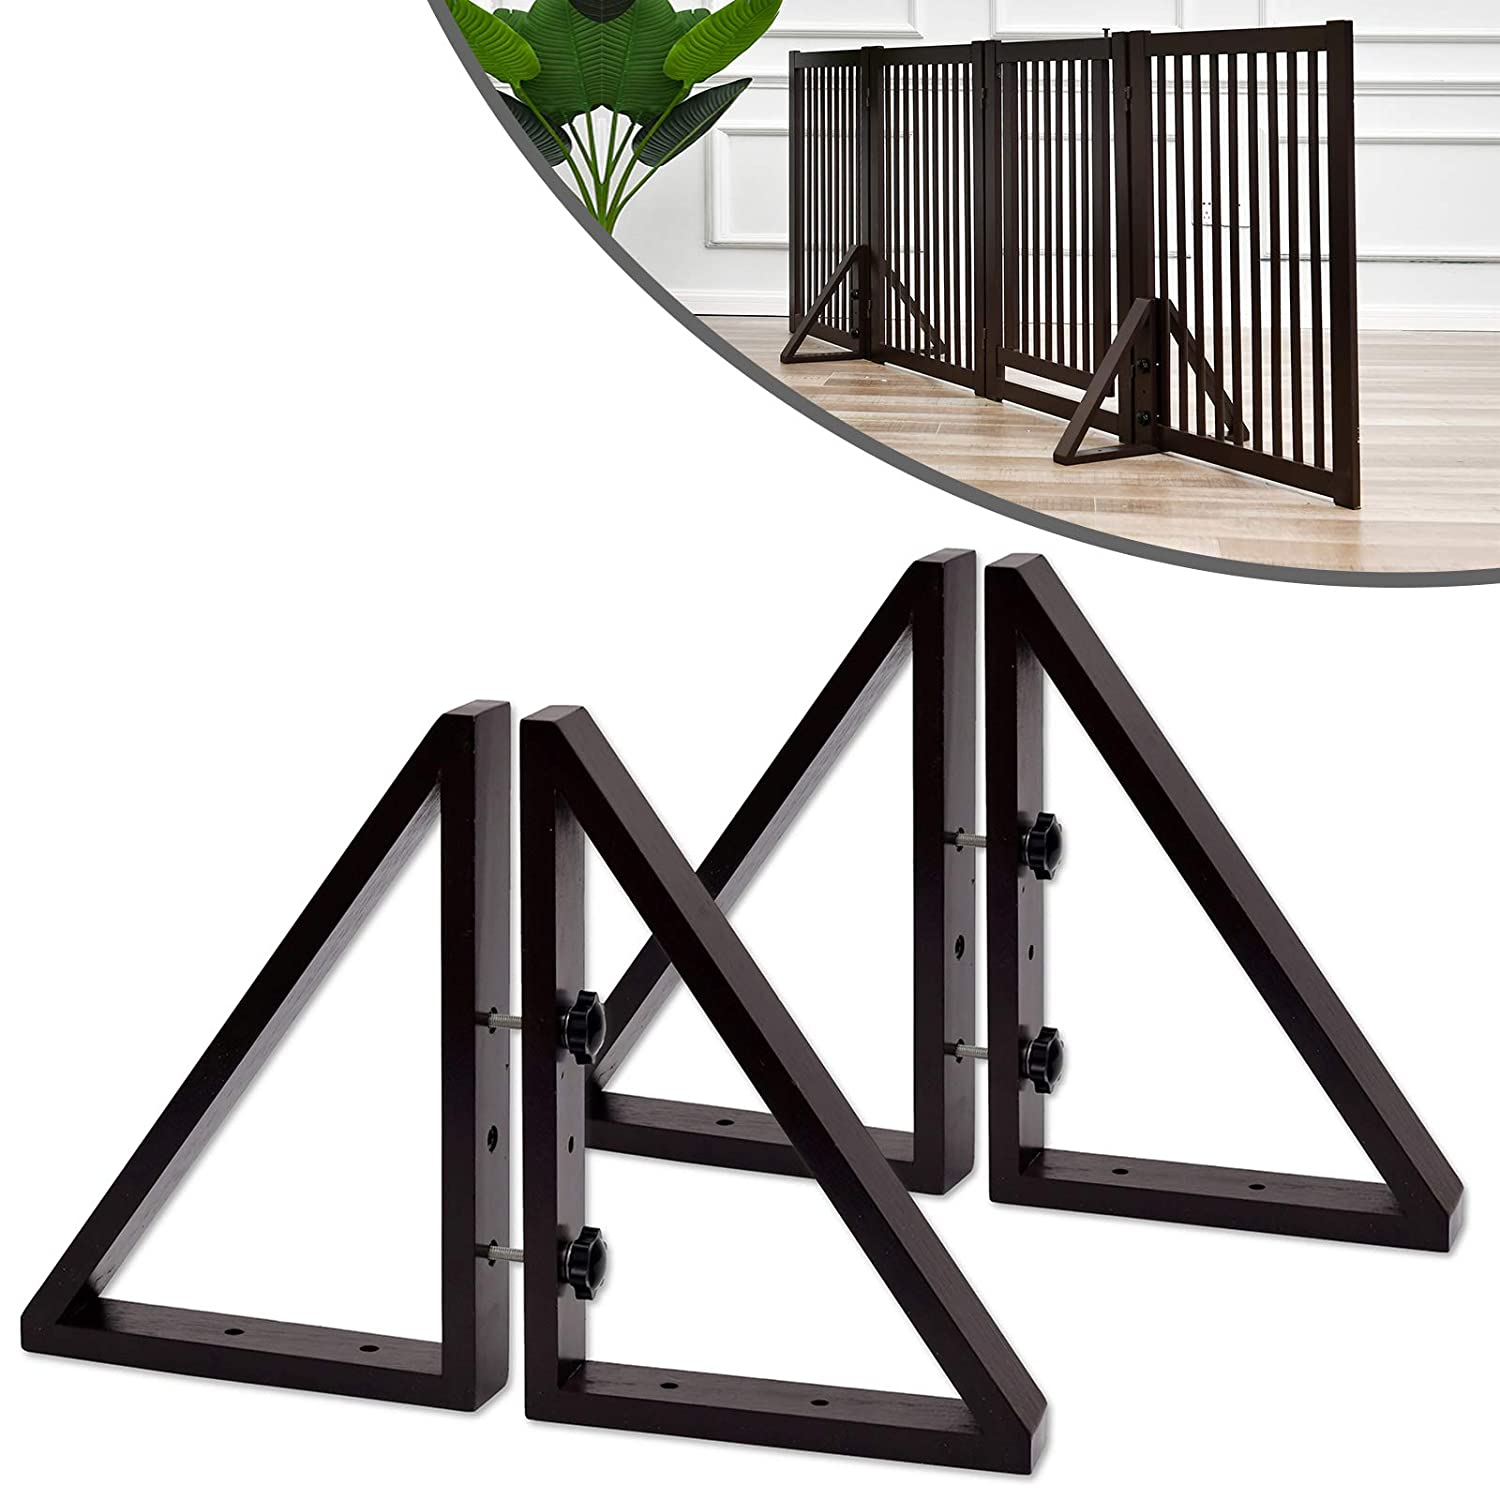 WELLAND Triangle Support Feet Set of 2 for 360 Degree Configurable Gate Collection, Solid Pine Wood, Easy to Install, 2 Pairs of Safety Fence Feet for Freestanding Pet Gates, Espresso (Only Feet)